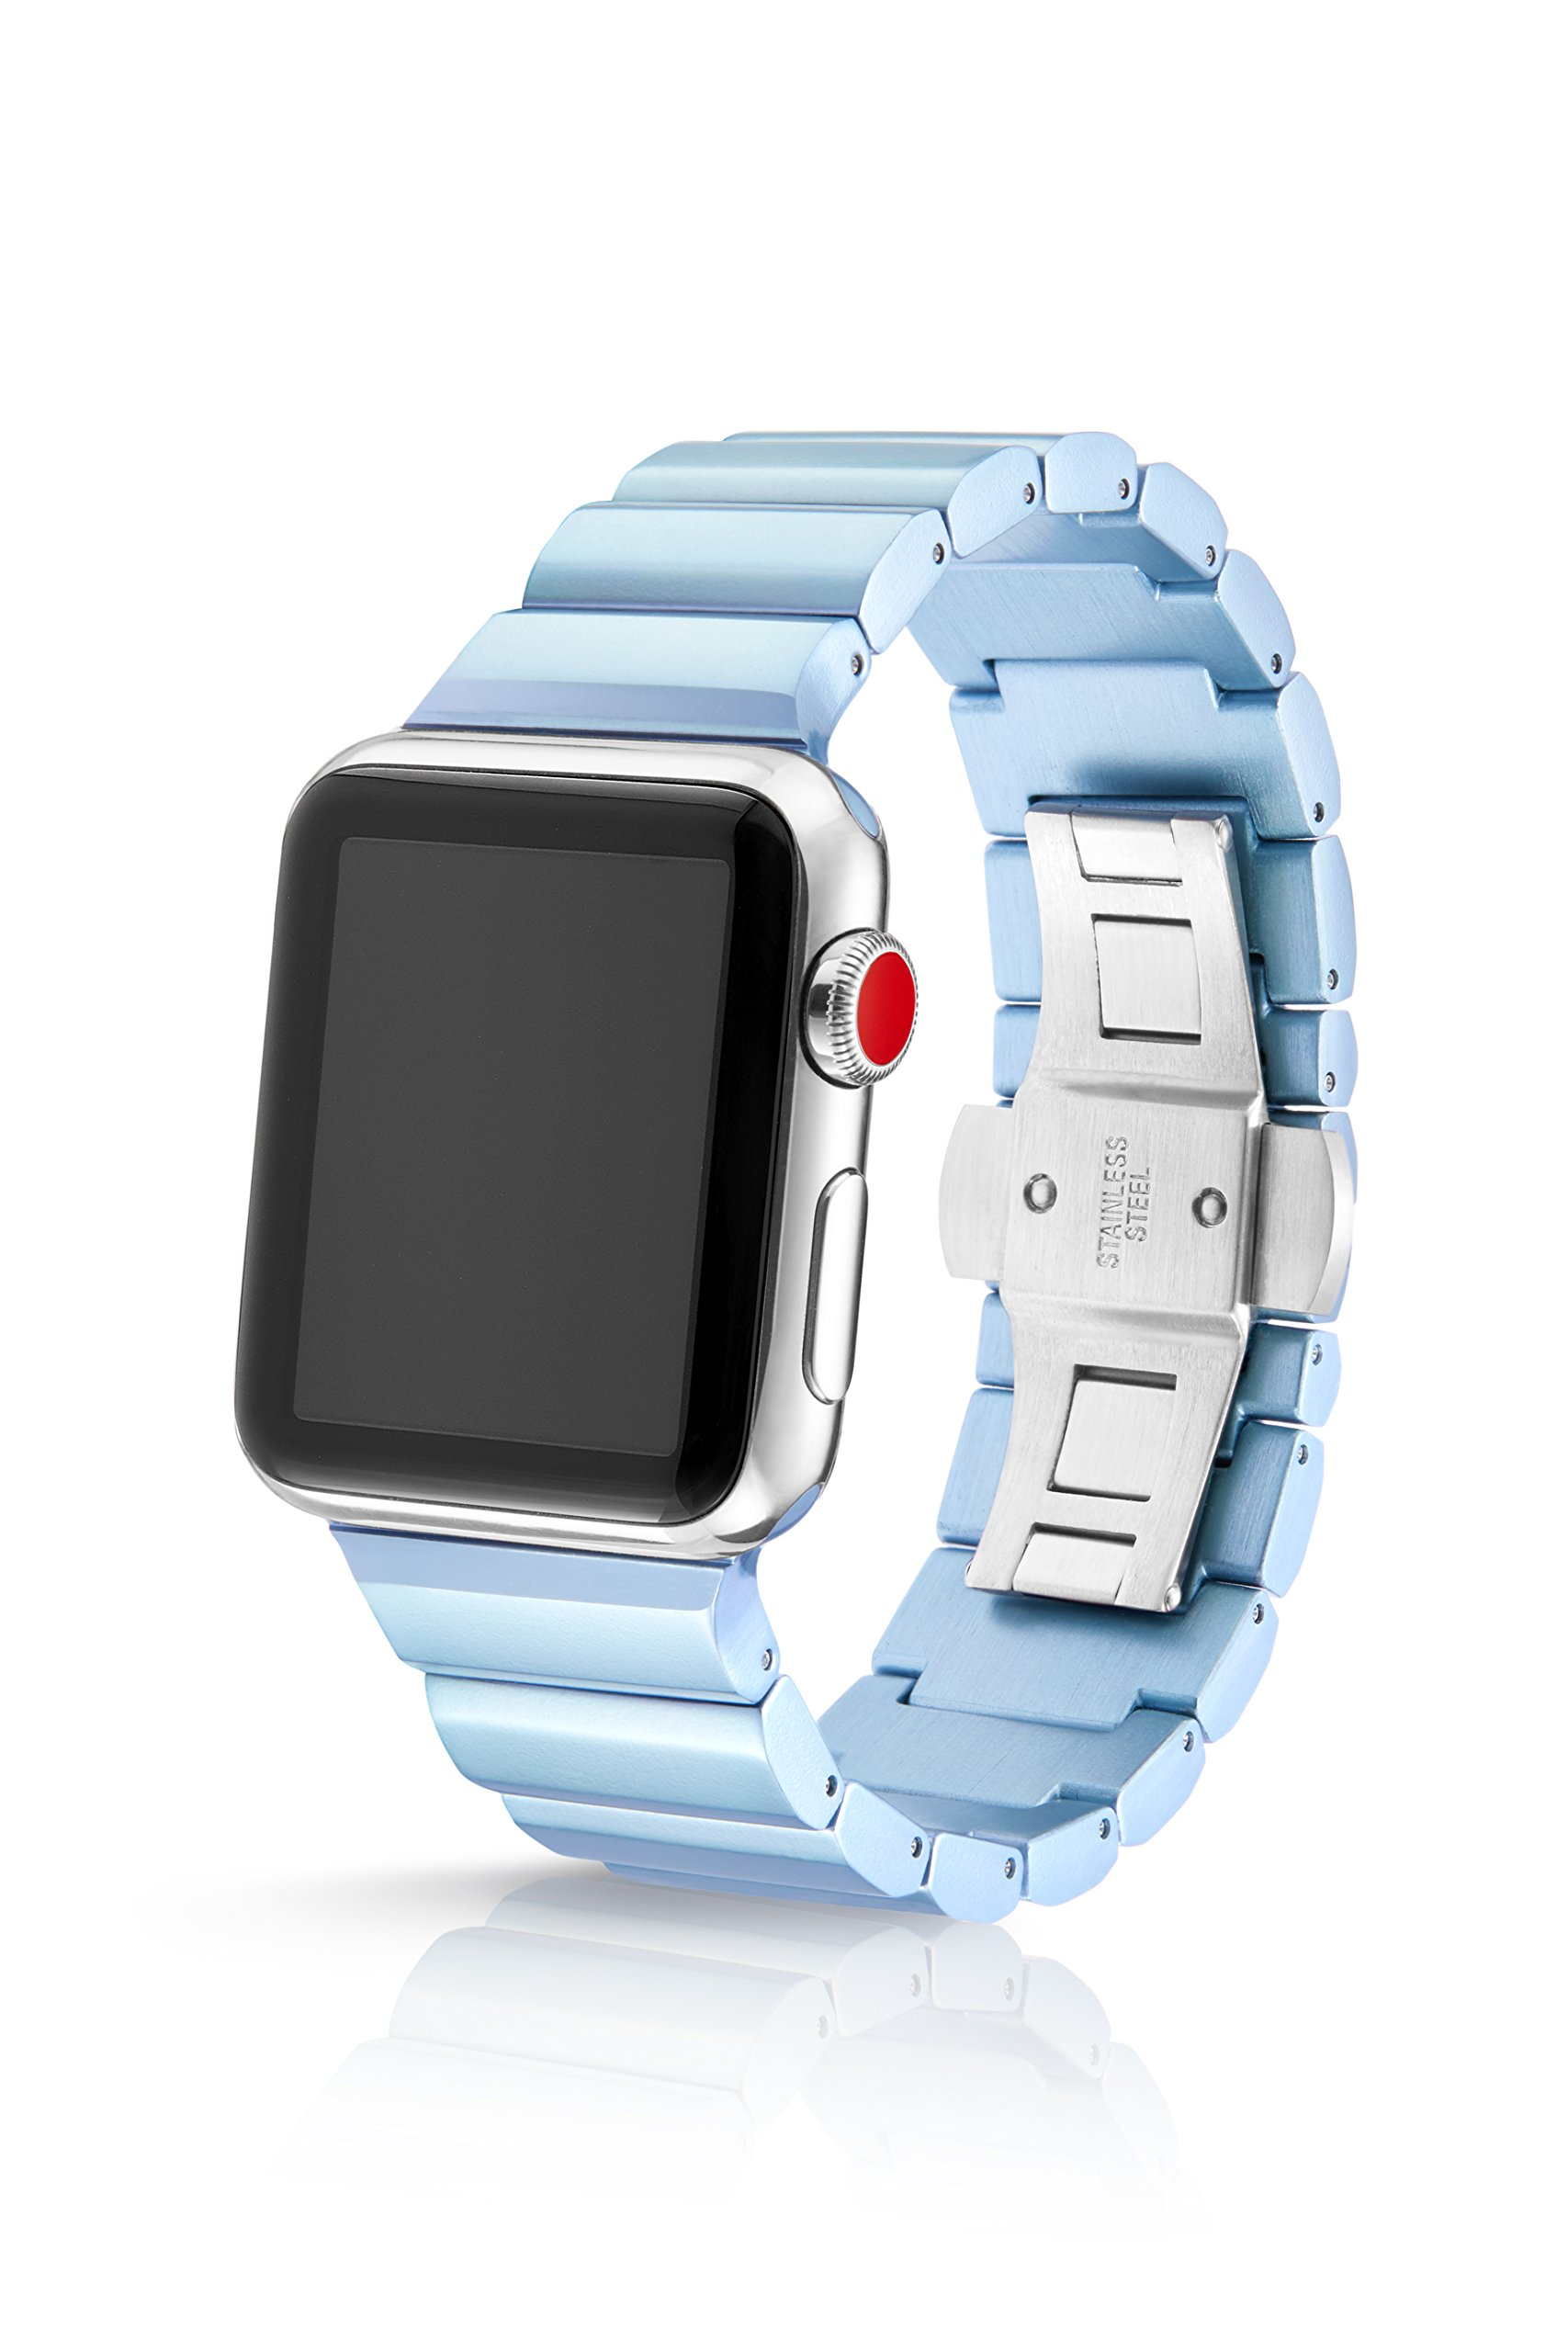 38/40mm JUUK Frost Ligero Premium Watch Band Made for The Apple Watch, Using Aircraft Grade, Hard Anodized 6000 Series Aluminum with a Solid Stainless Steel Butterfly deployant Buckle (semi-Polished)